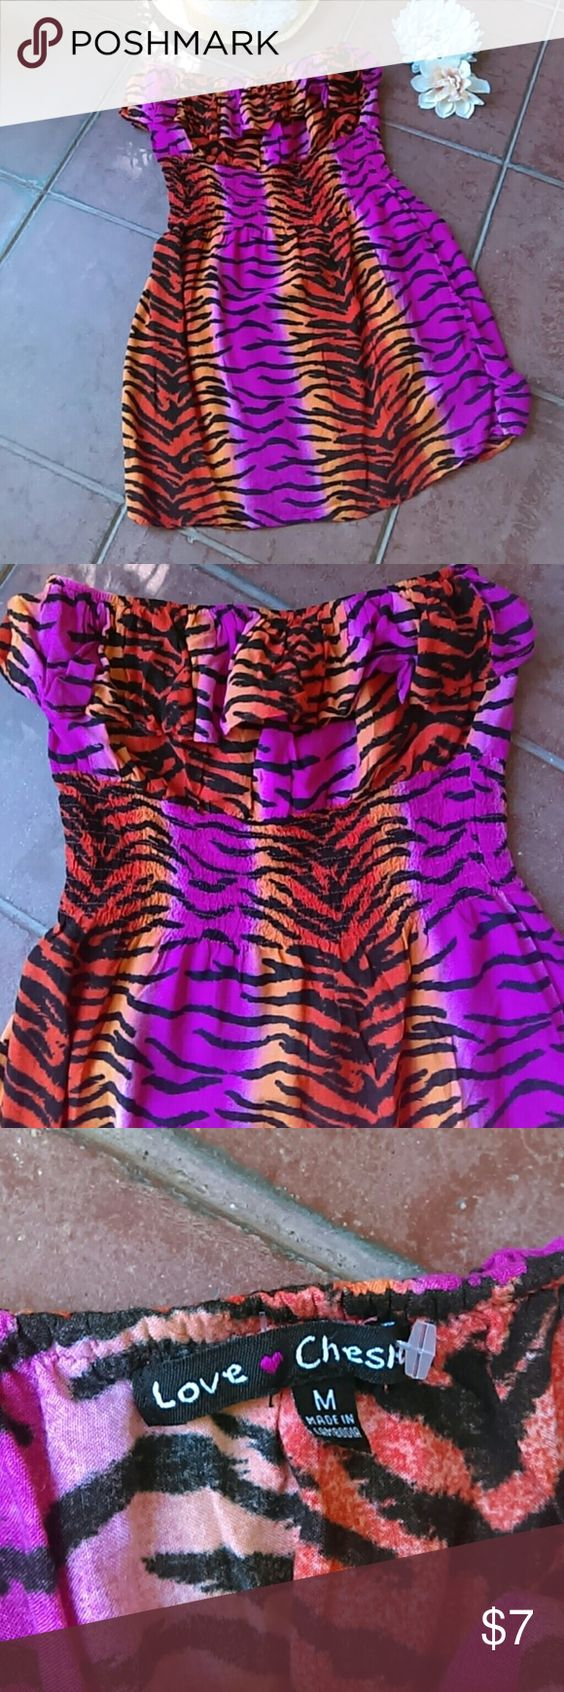 Animal Print Mini Dress sz M Bold animal print mini dress by Love Chesley, sz M. Never worn but tags missing. You can see the plastic on the tag where they were. Maybe a beach cover-up? Features elastic waist. Flirty! 100% Cotton. Machine wash. Love Chesley Dresses Strapless